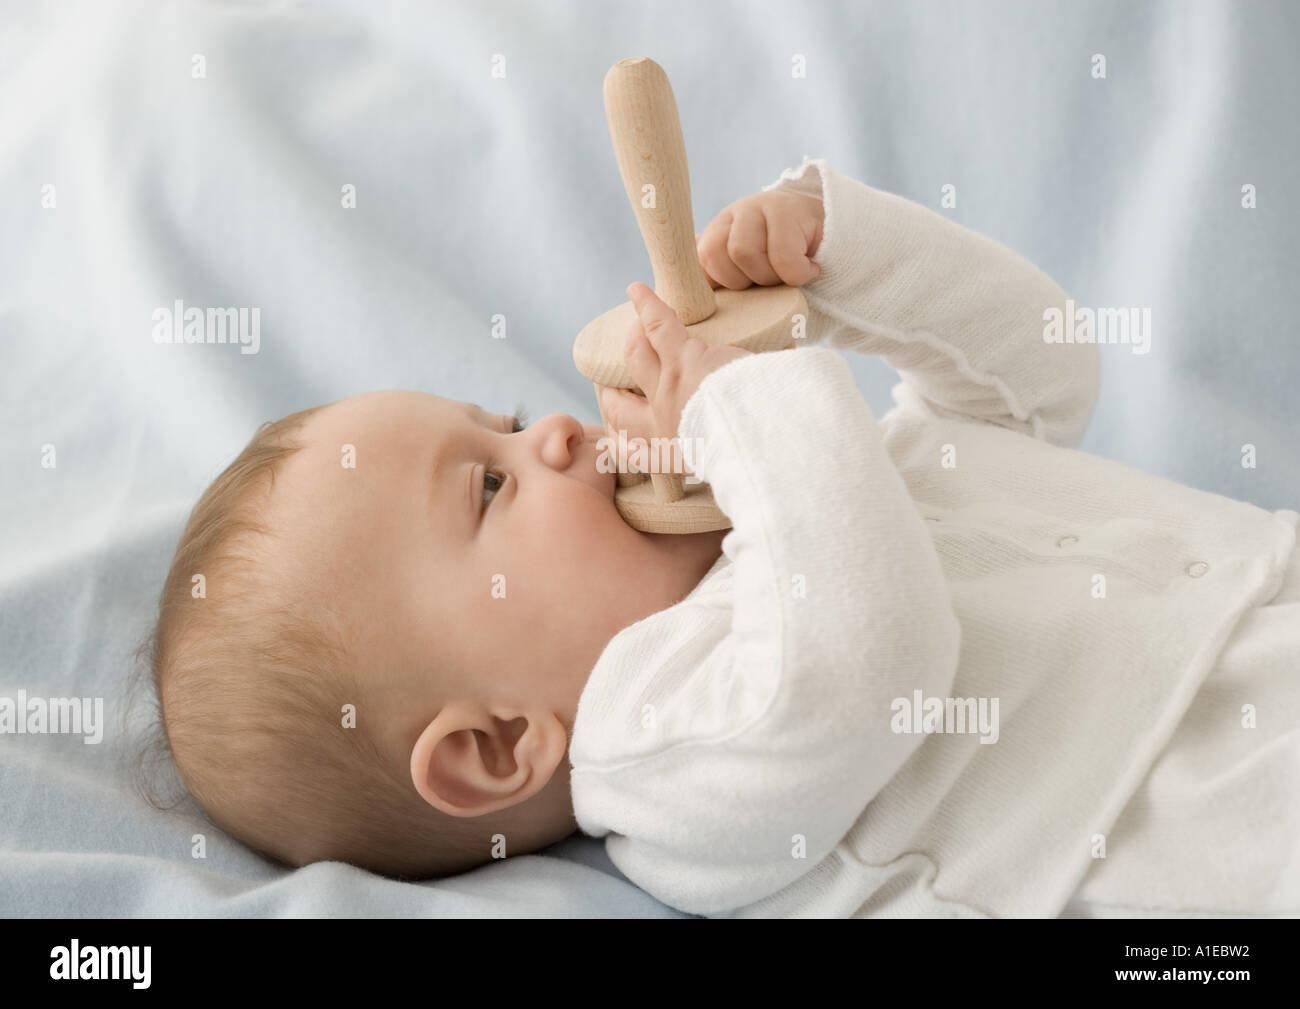 Baby chewing on rattle - Stock Image